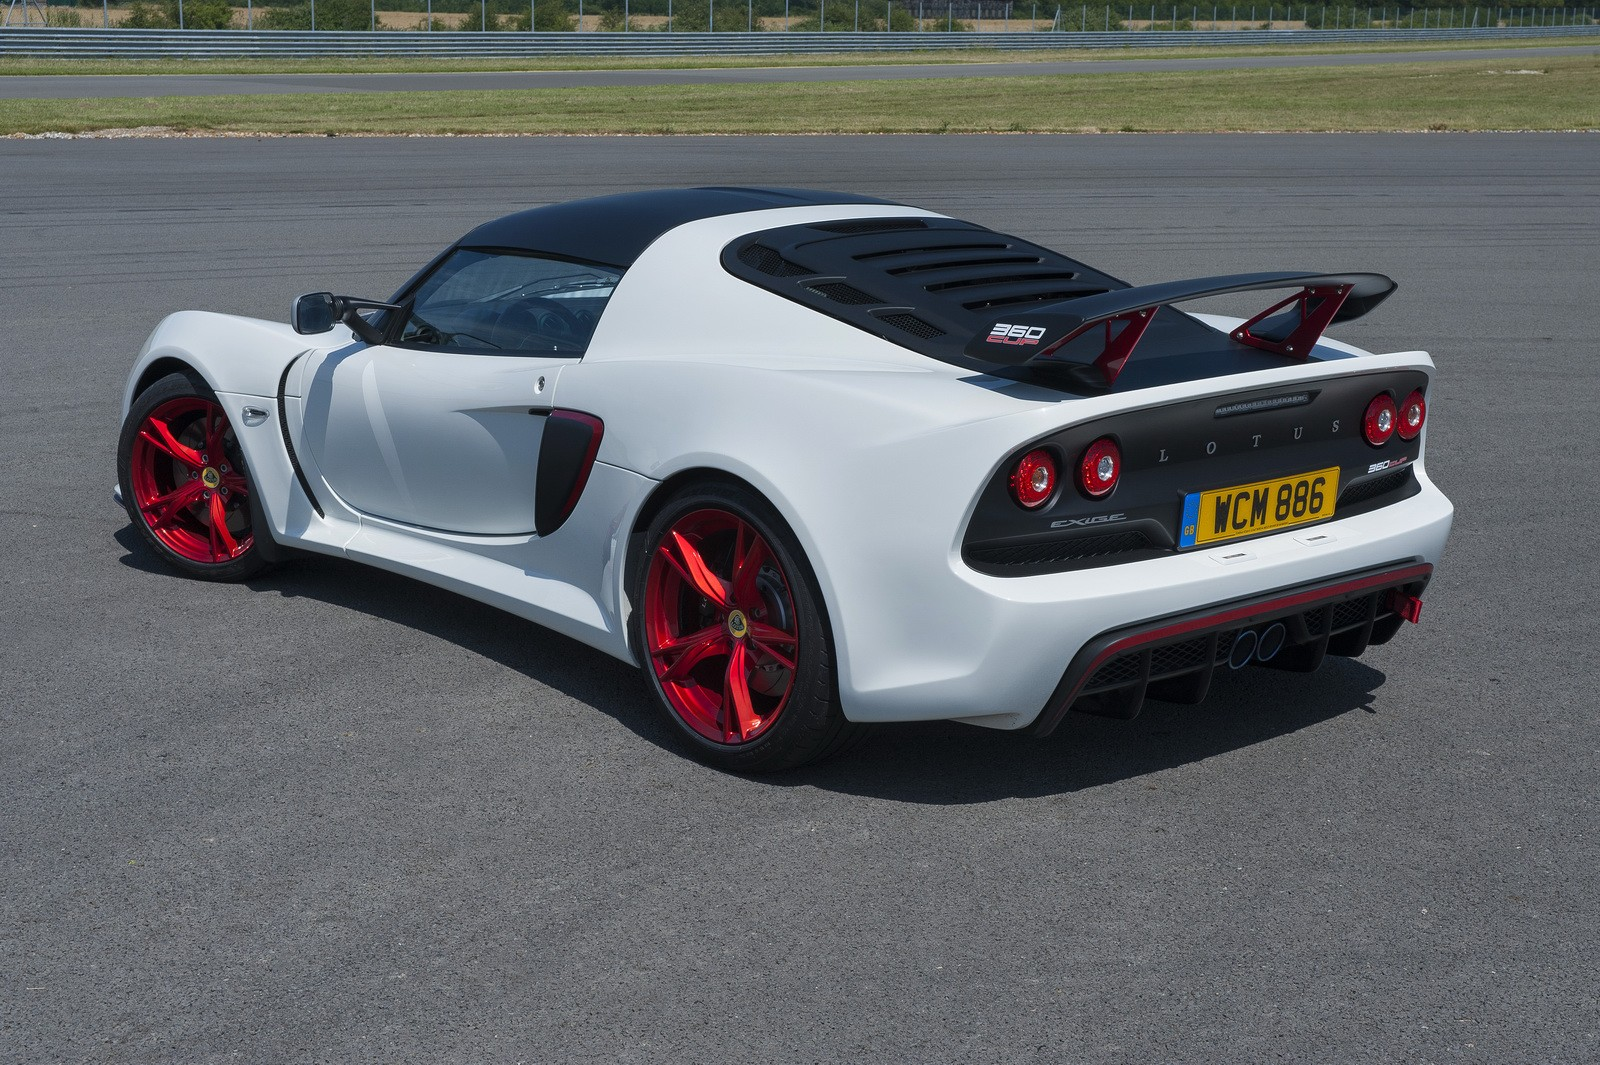 https://s1.cdn.autoevolution.com/images/news/gallery/lotus-exige-360-cup-officially-unveiled-only-50-to-be-made-photo-gallery_10.jpg